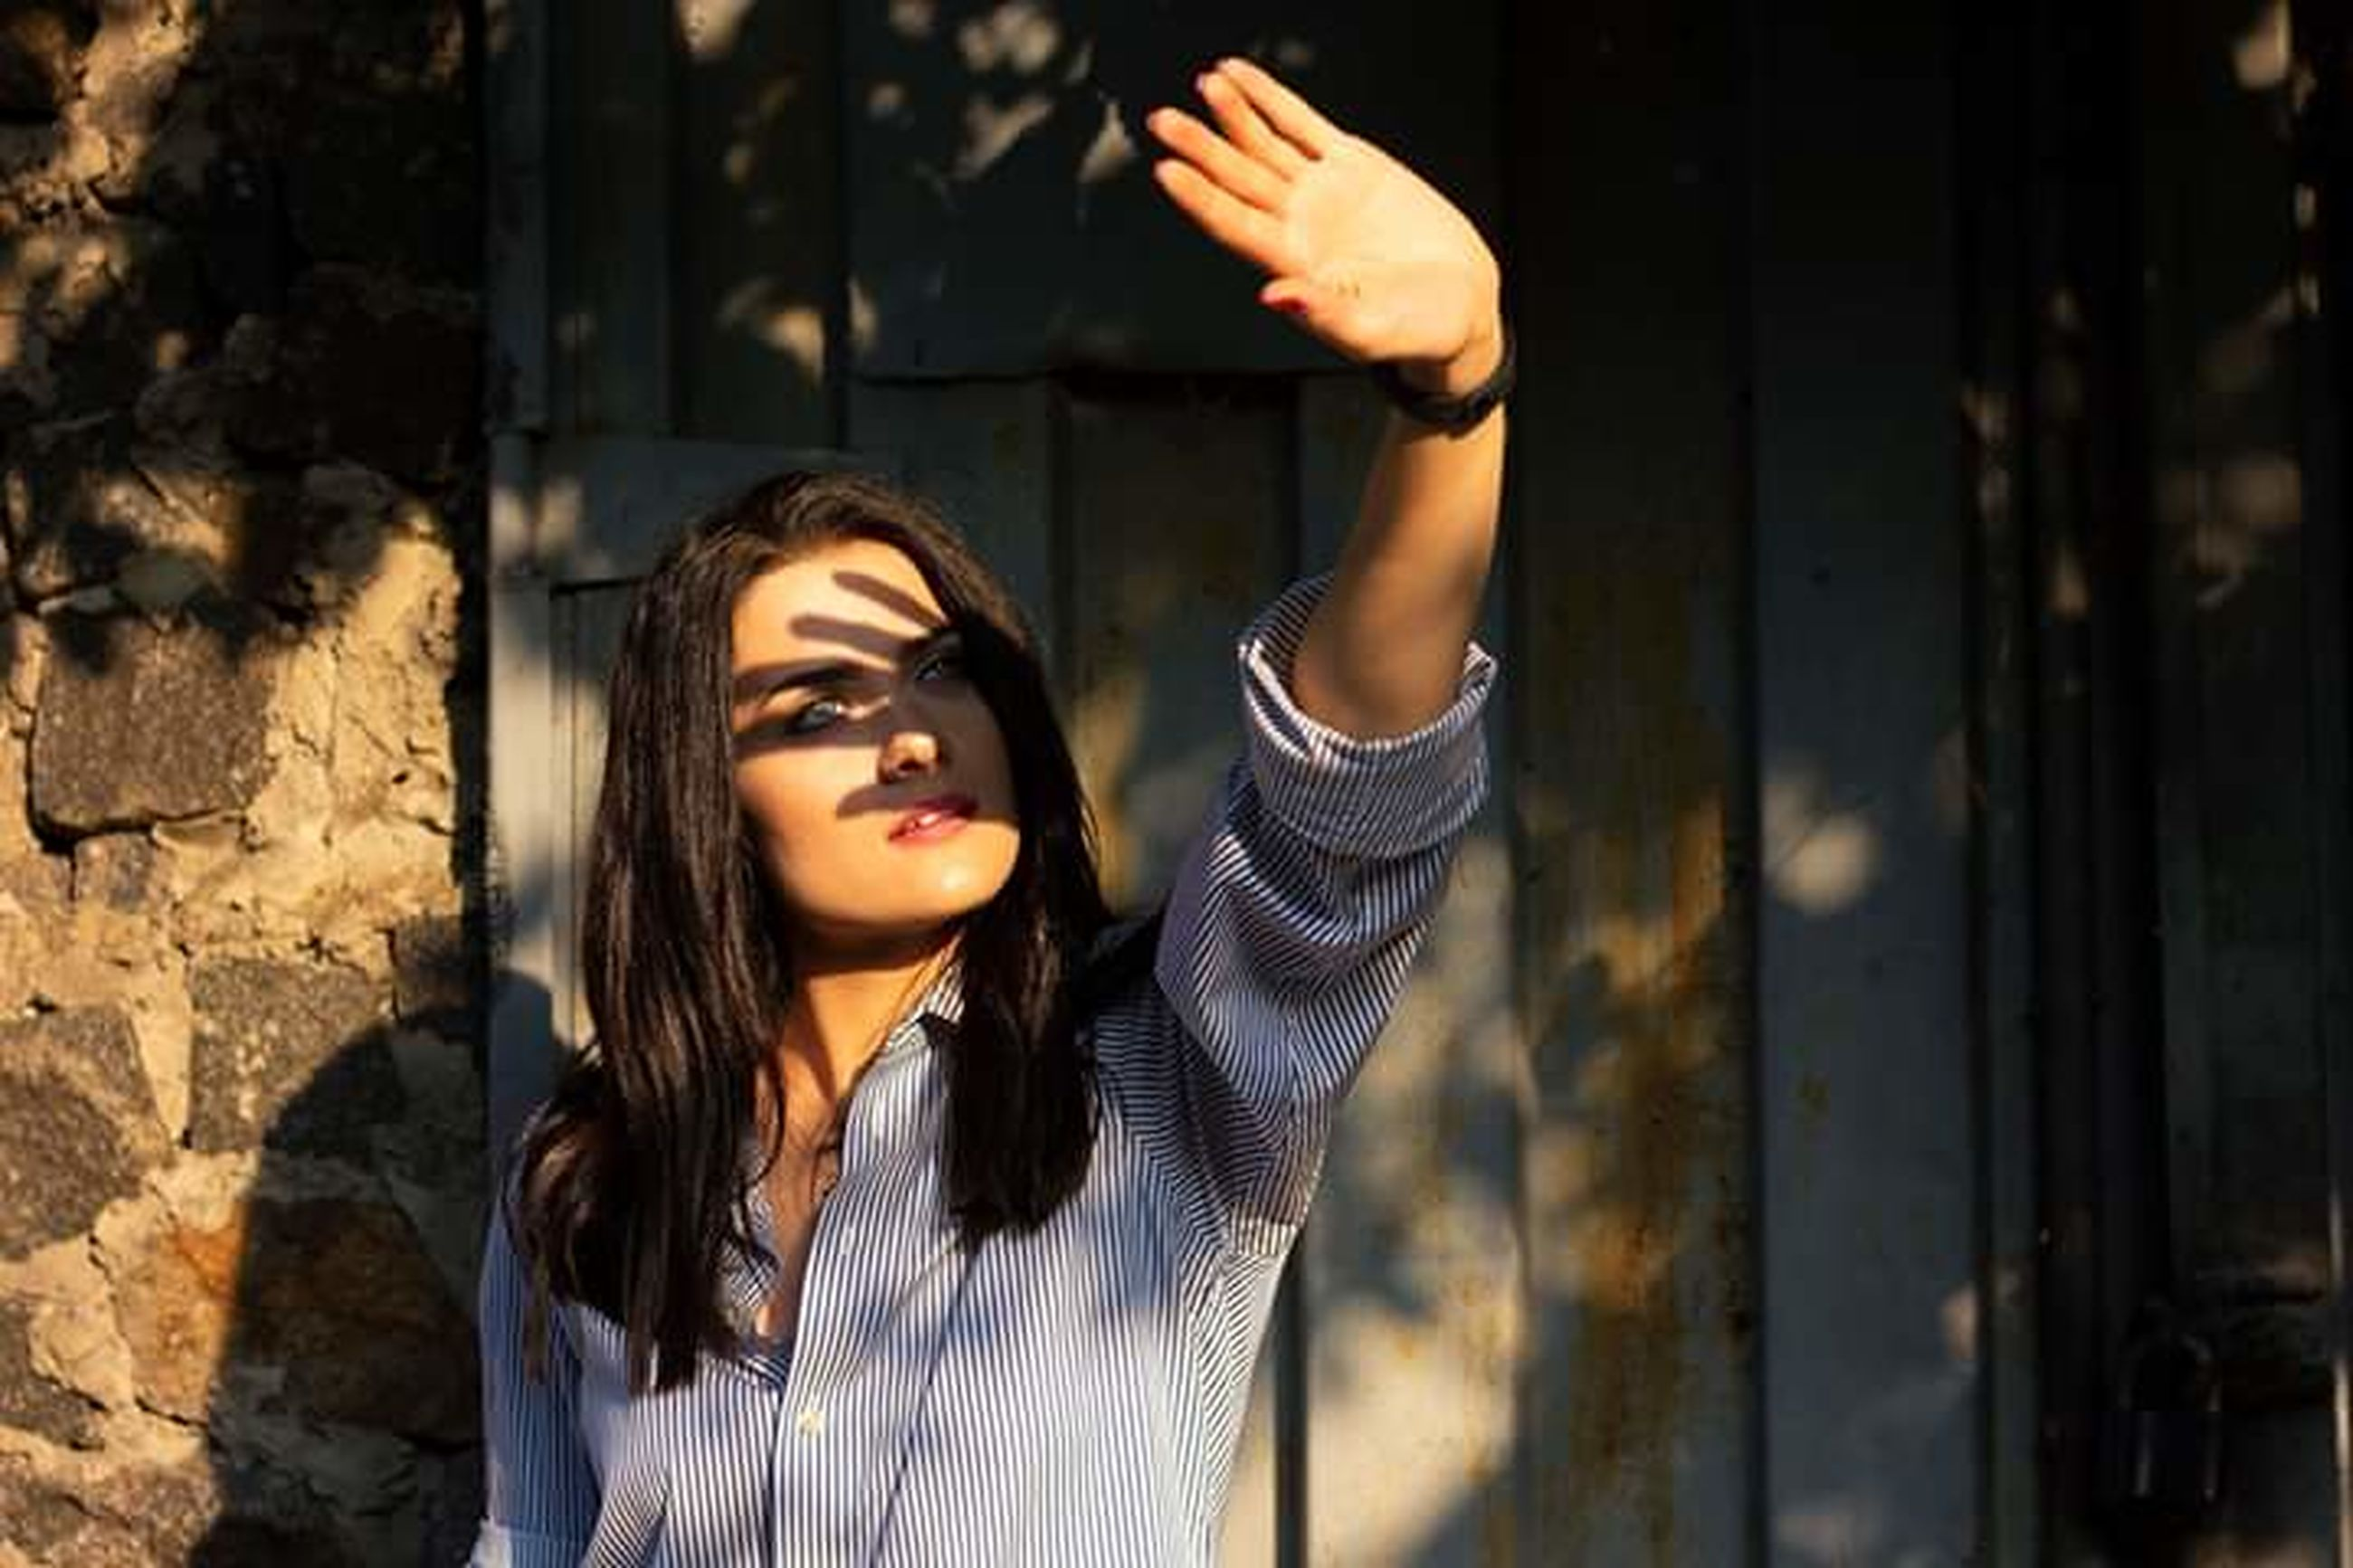 one person, portrait, headshot, young adult, beauty, arms raised, standing, looking, hair, women, beautiful woman, hairstyle, adult, human arm, brown hair, sunlight, body part, long hair, outdoors, human limb, contemplation, hand raised, brick